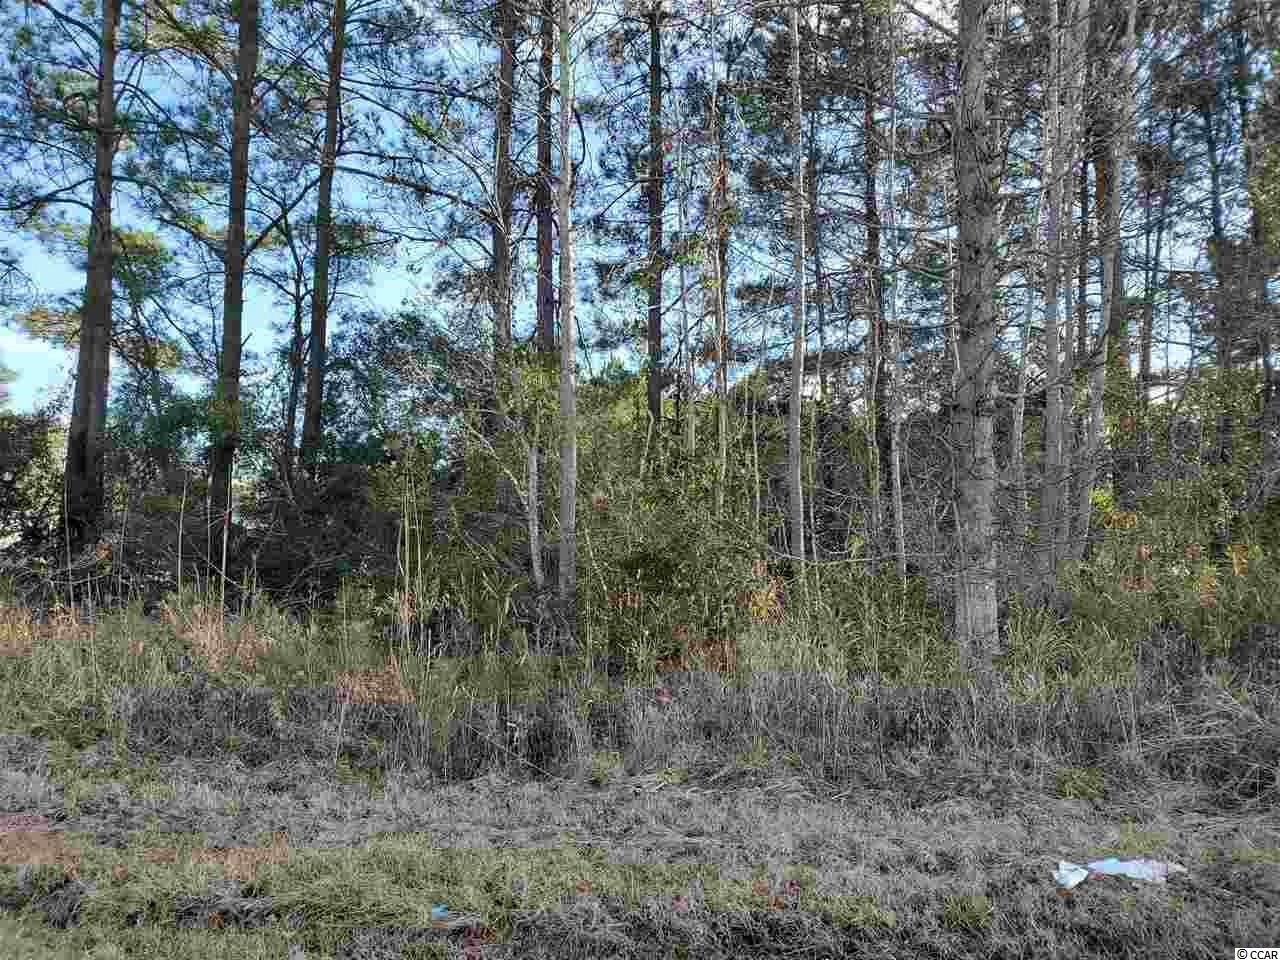 One acre lot for Sale in Little River, SC.  Only a 10-15 minute drive to the beach.  Not in a designated flood zone. Manufactured and stick built homes are permitted. No HOA.  Located near shopping, dining, and entertainment.